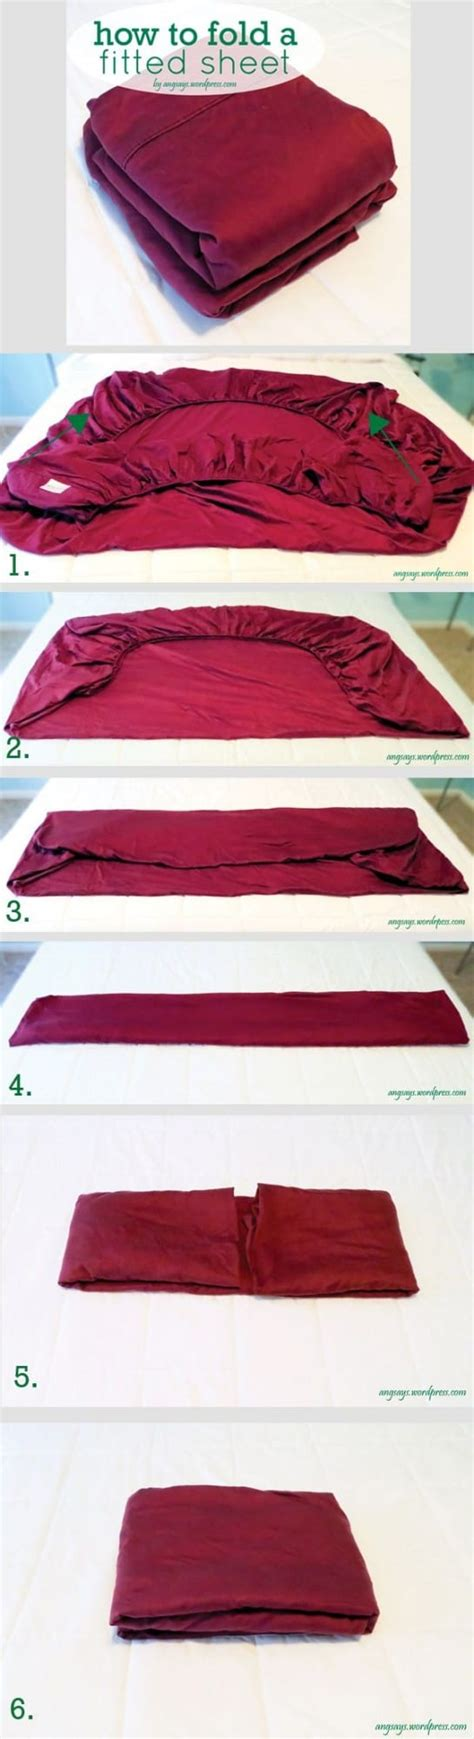 folding a fitted sheet how to fold a fitted sheet easy tips and tricks